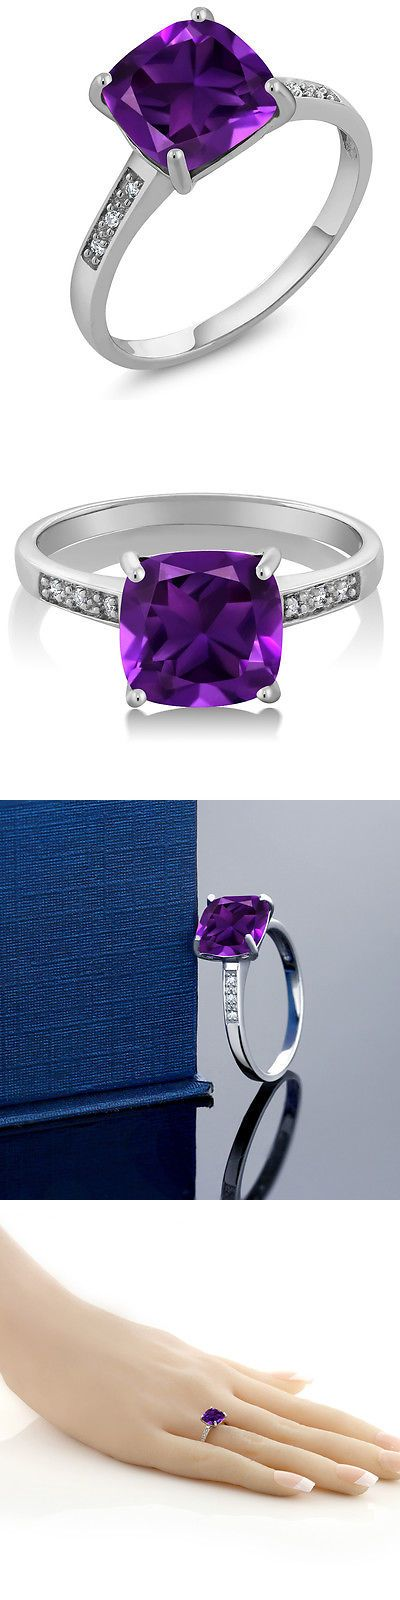 Gemstone 164343: Womens 10K White Gold Cushion 8Mm Purple Amethyst And Diamond Ring BUY IT NOW ONLY: $124.99